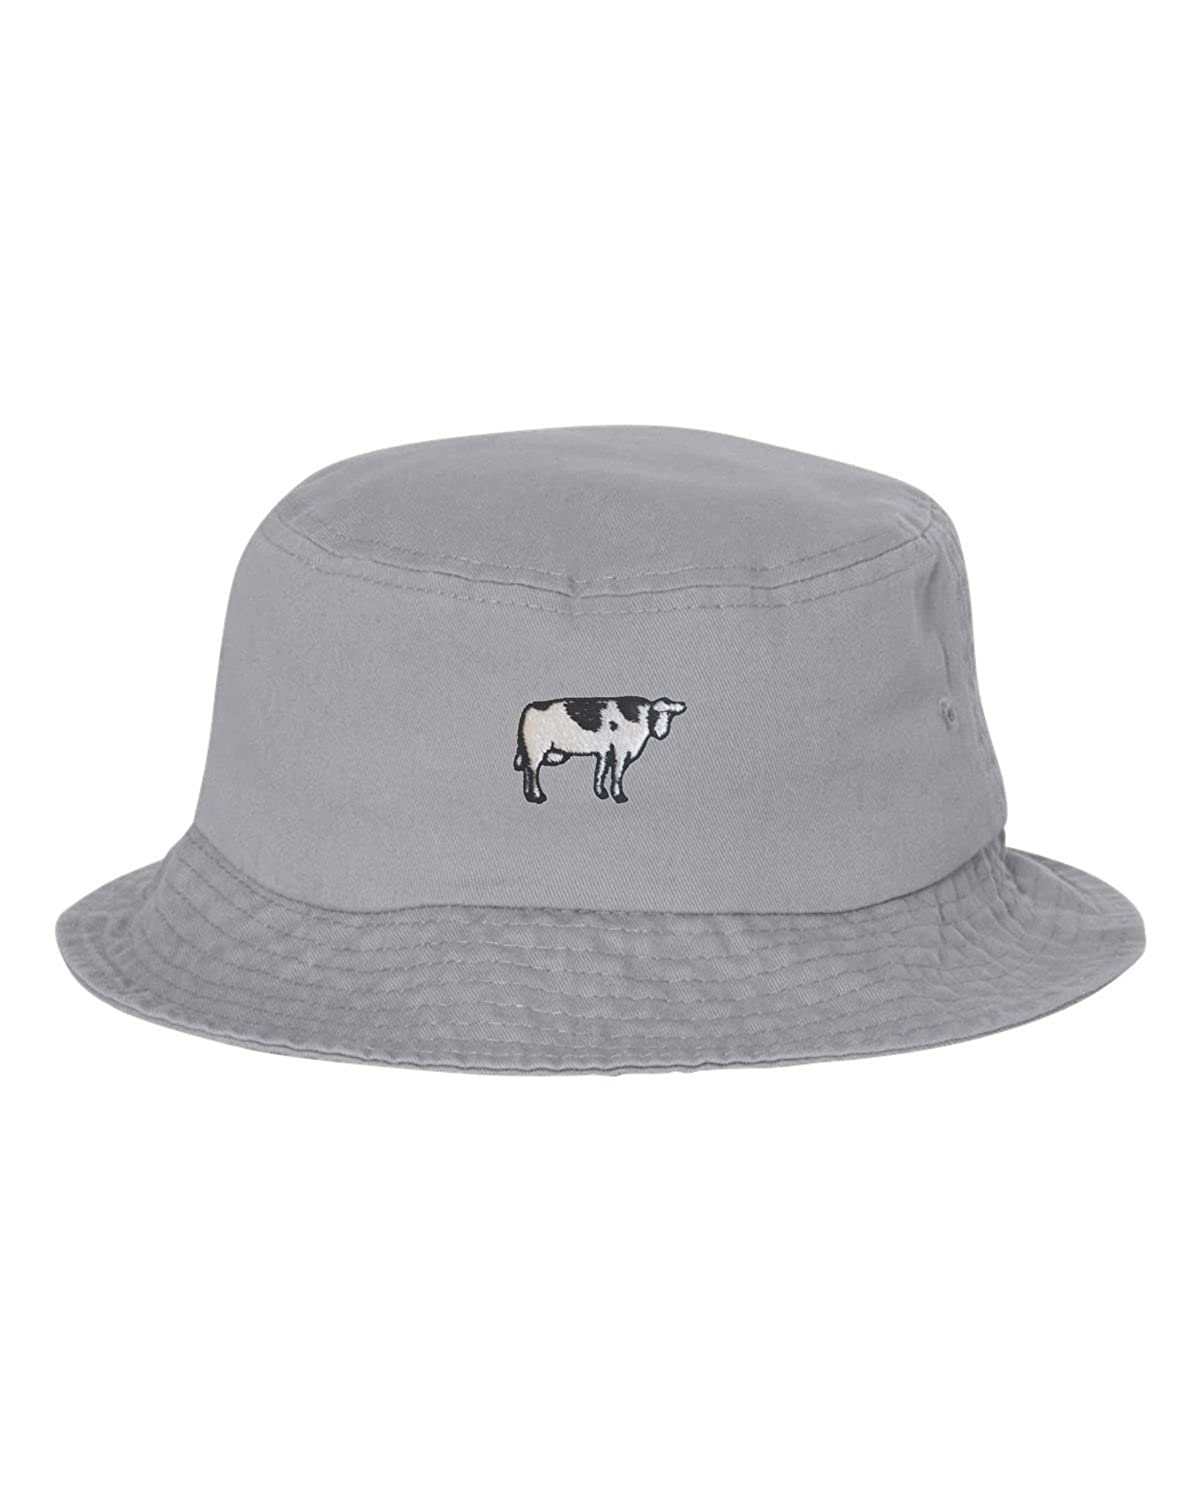 e626b3f952c Amazon.com  Go All Out One Size Black Adult Cow Embroidered Bucket Cap Dad  Hat  Clothing